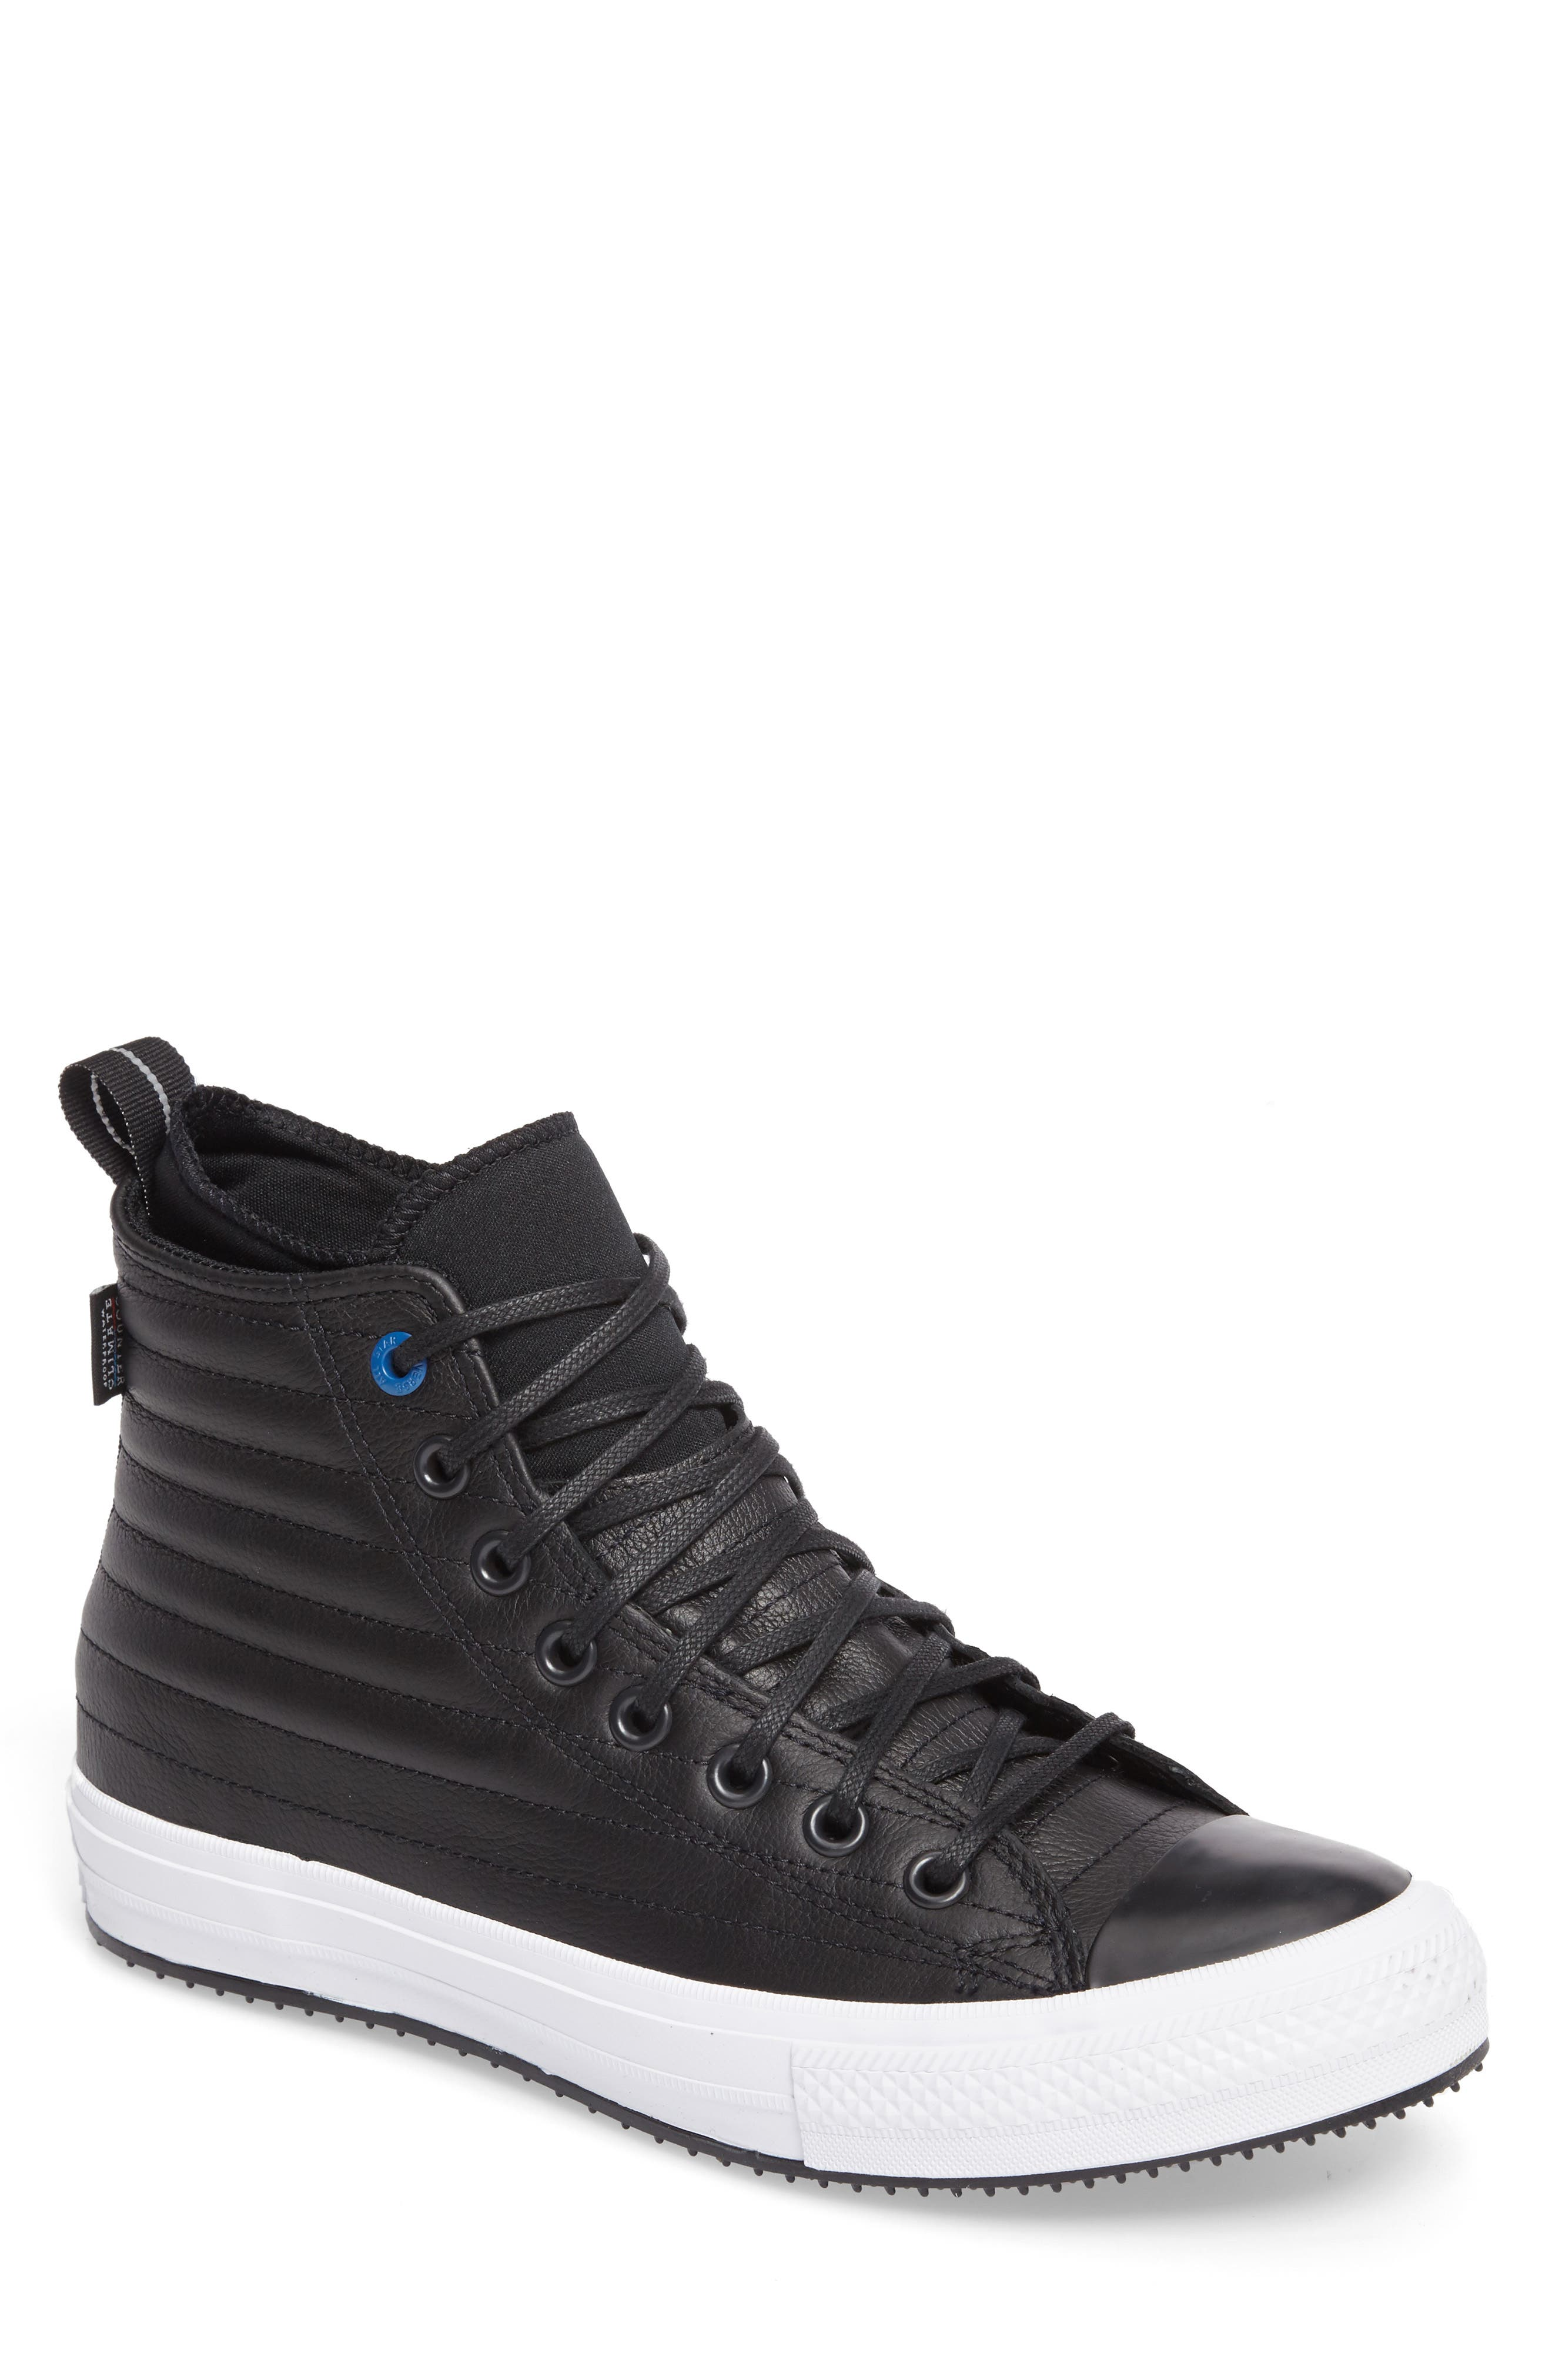 Chuck Taylor<sup>®</sup> All Star<sup>®</sup> Waterproof Quilted Sneaker,                         Main,                         color, Black Leather